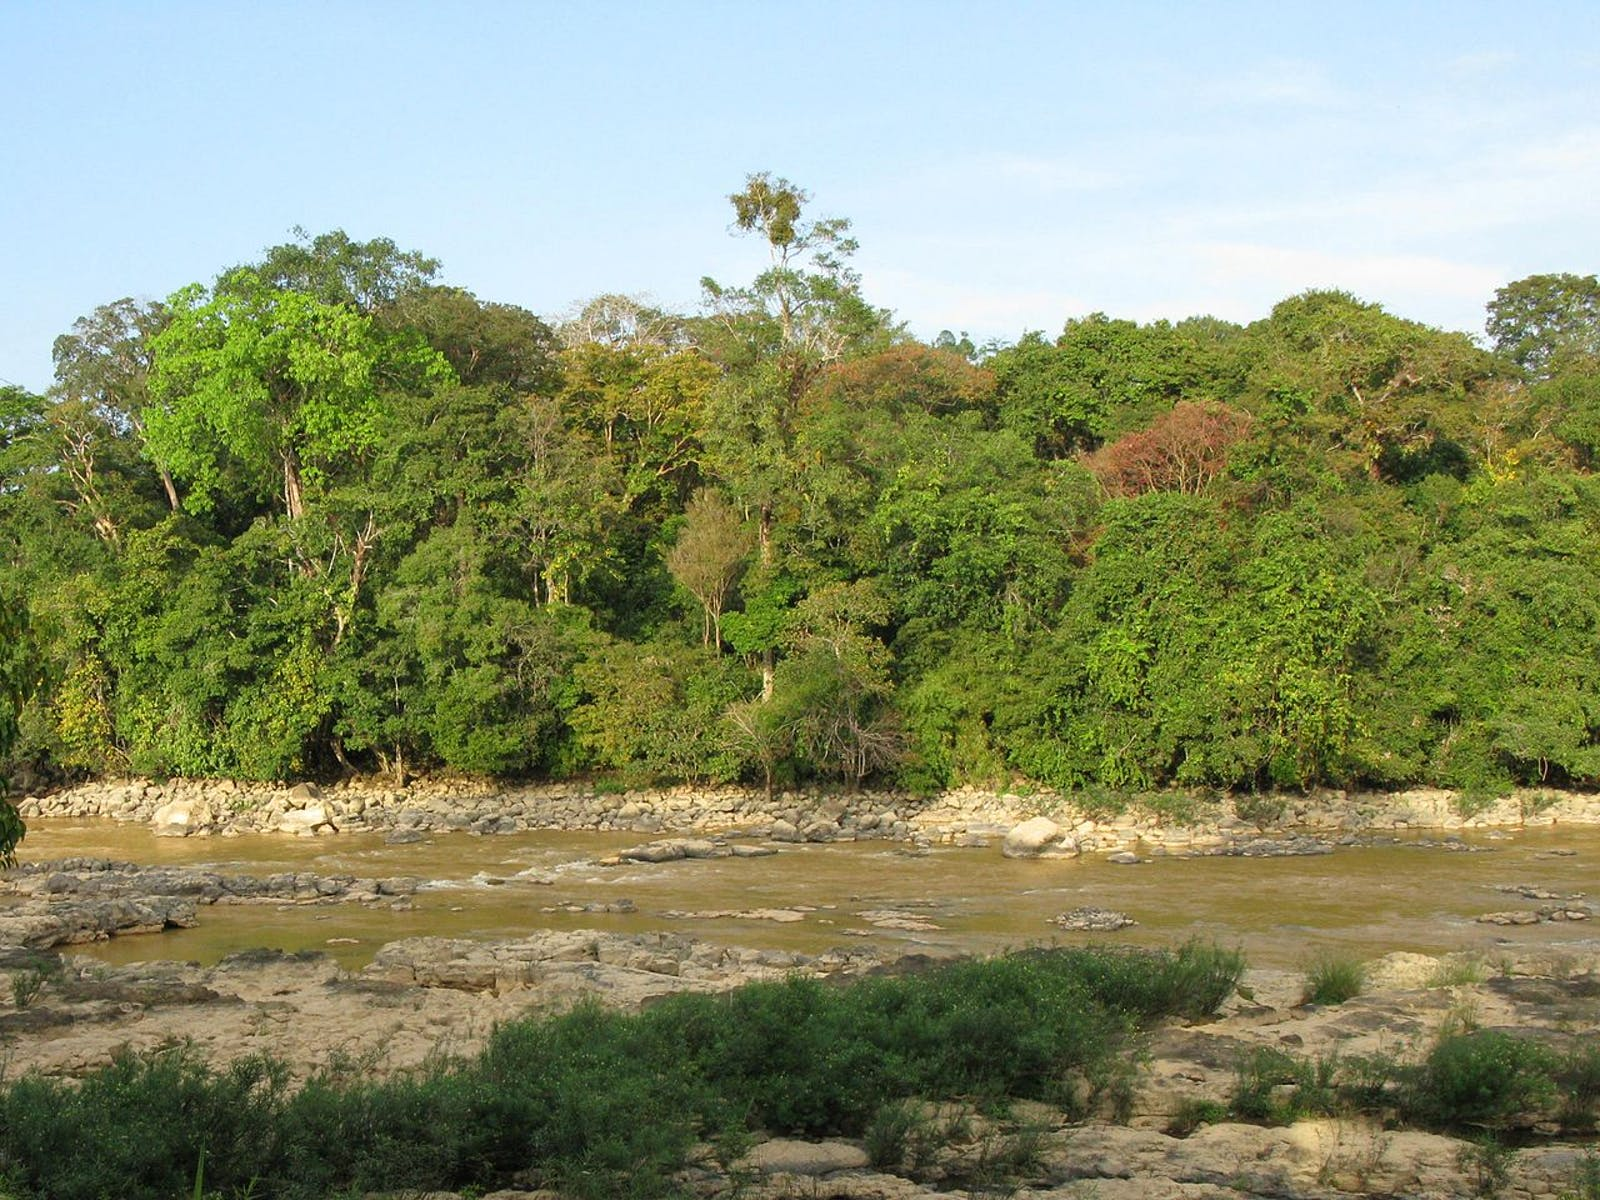 Southeastern Indochina Dry Evergreen Forests